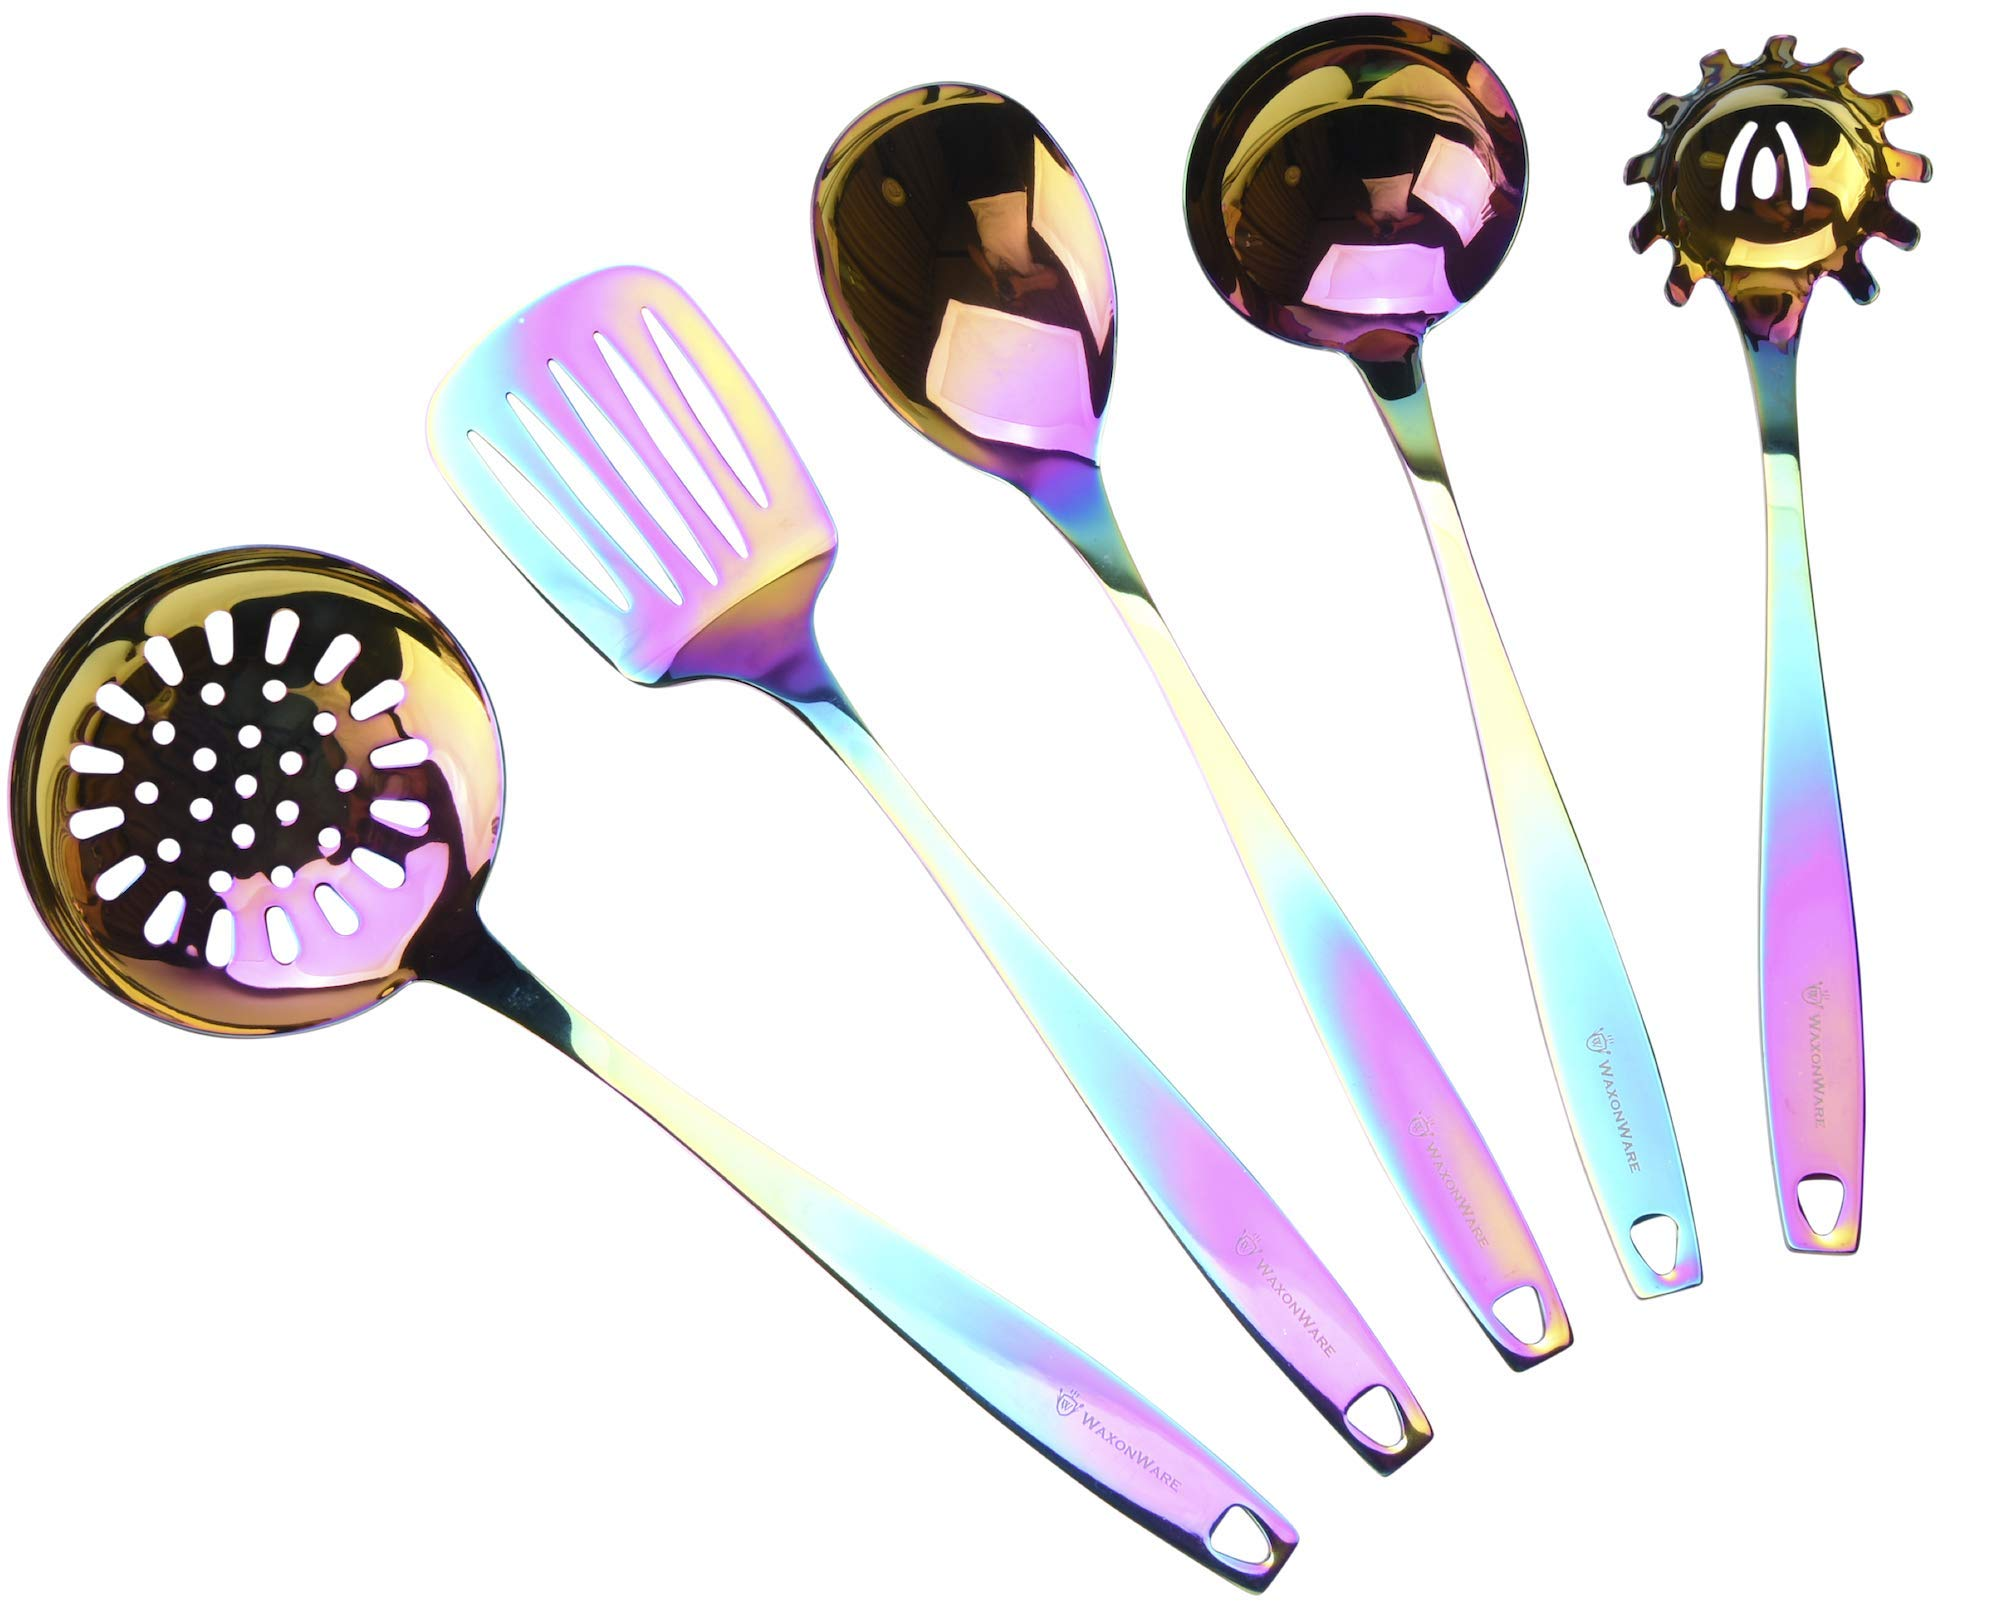 WaxonWare Stainless Steel Kitchen Tools (5-Piece Set) Complete Utensil Bundle | Spaghetti Server, Spoon, Skimmer, Ladle, Slotted Turner | Rainbow PVD Coated